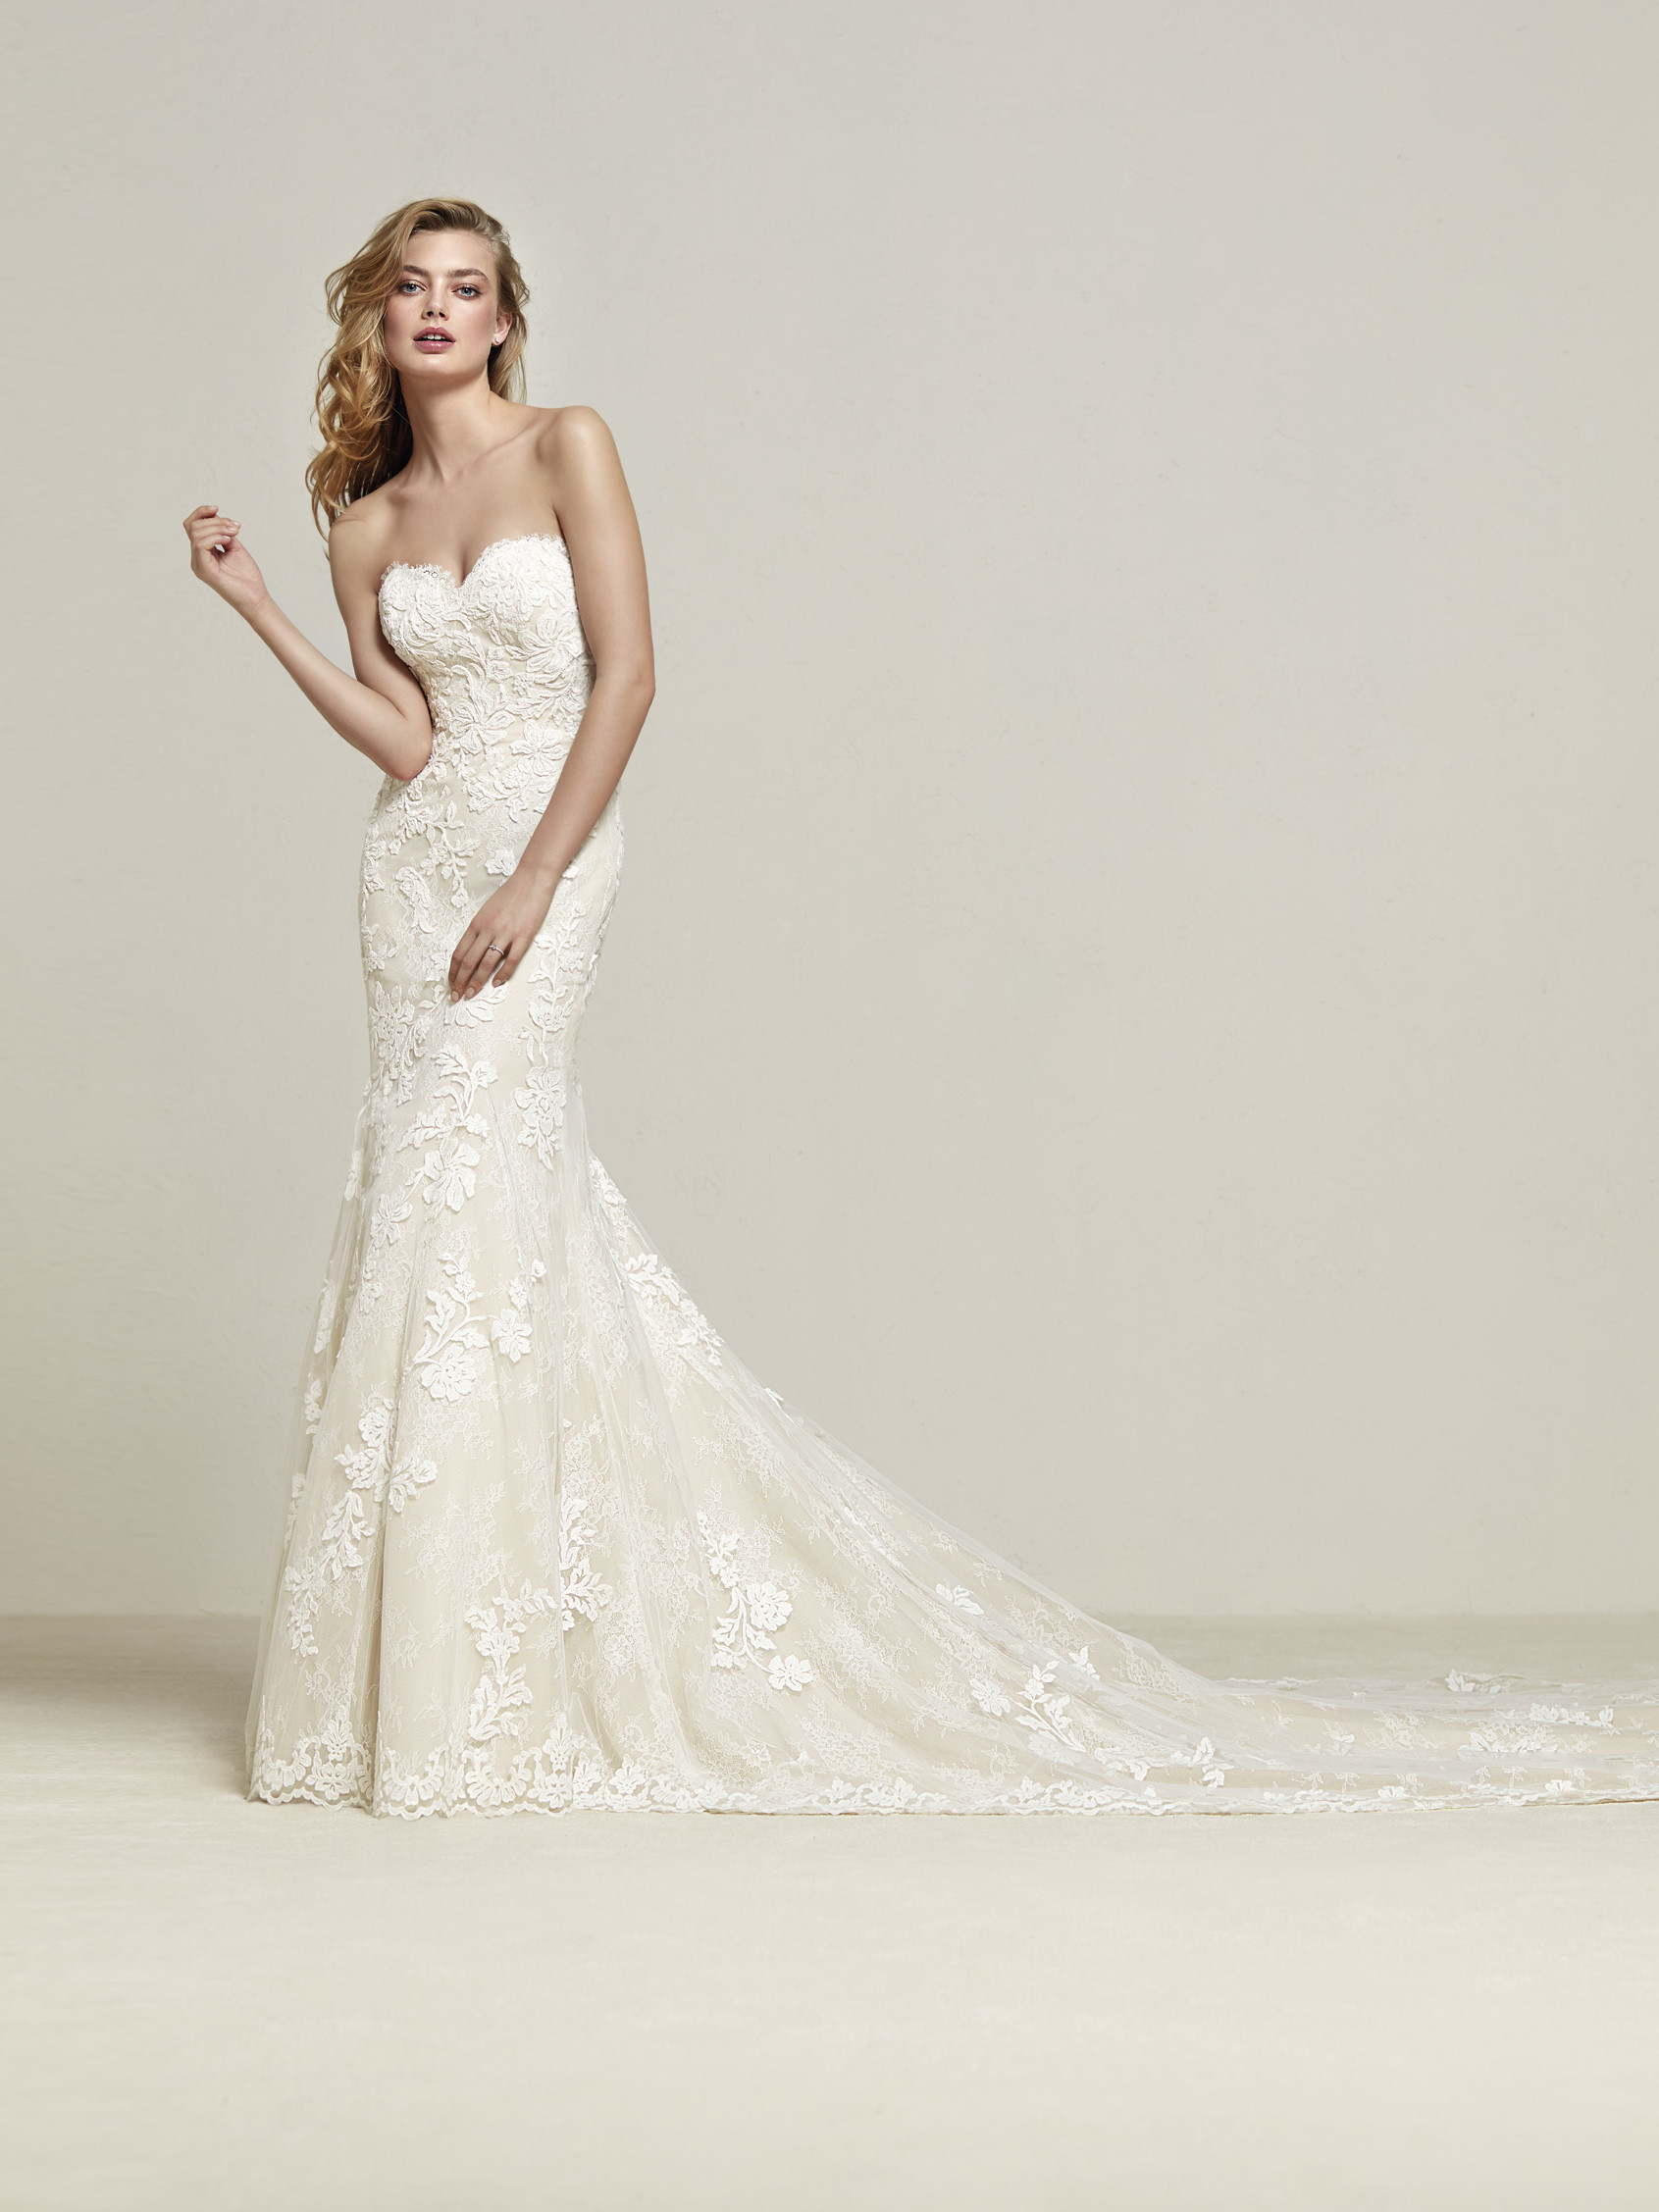 Strapless wedding dress with sweetheart neckline dresine pronovias strapless wedding dress sweetheart neckline draval junglespirit Choice Image